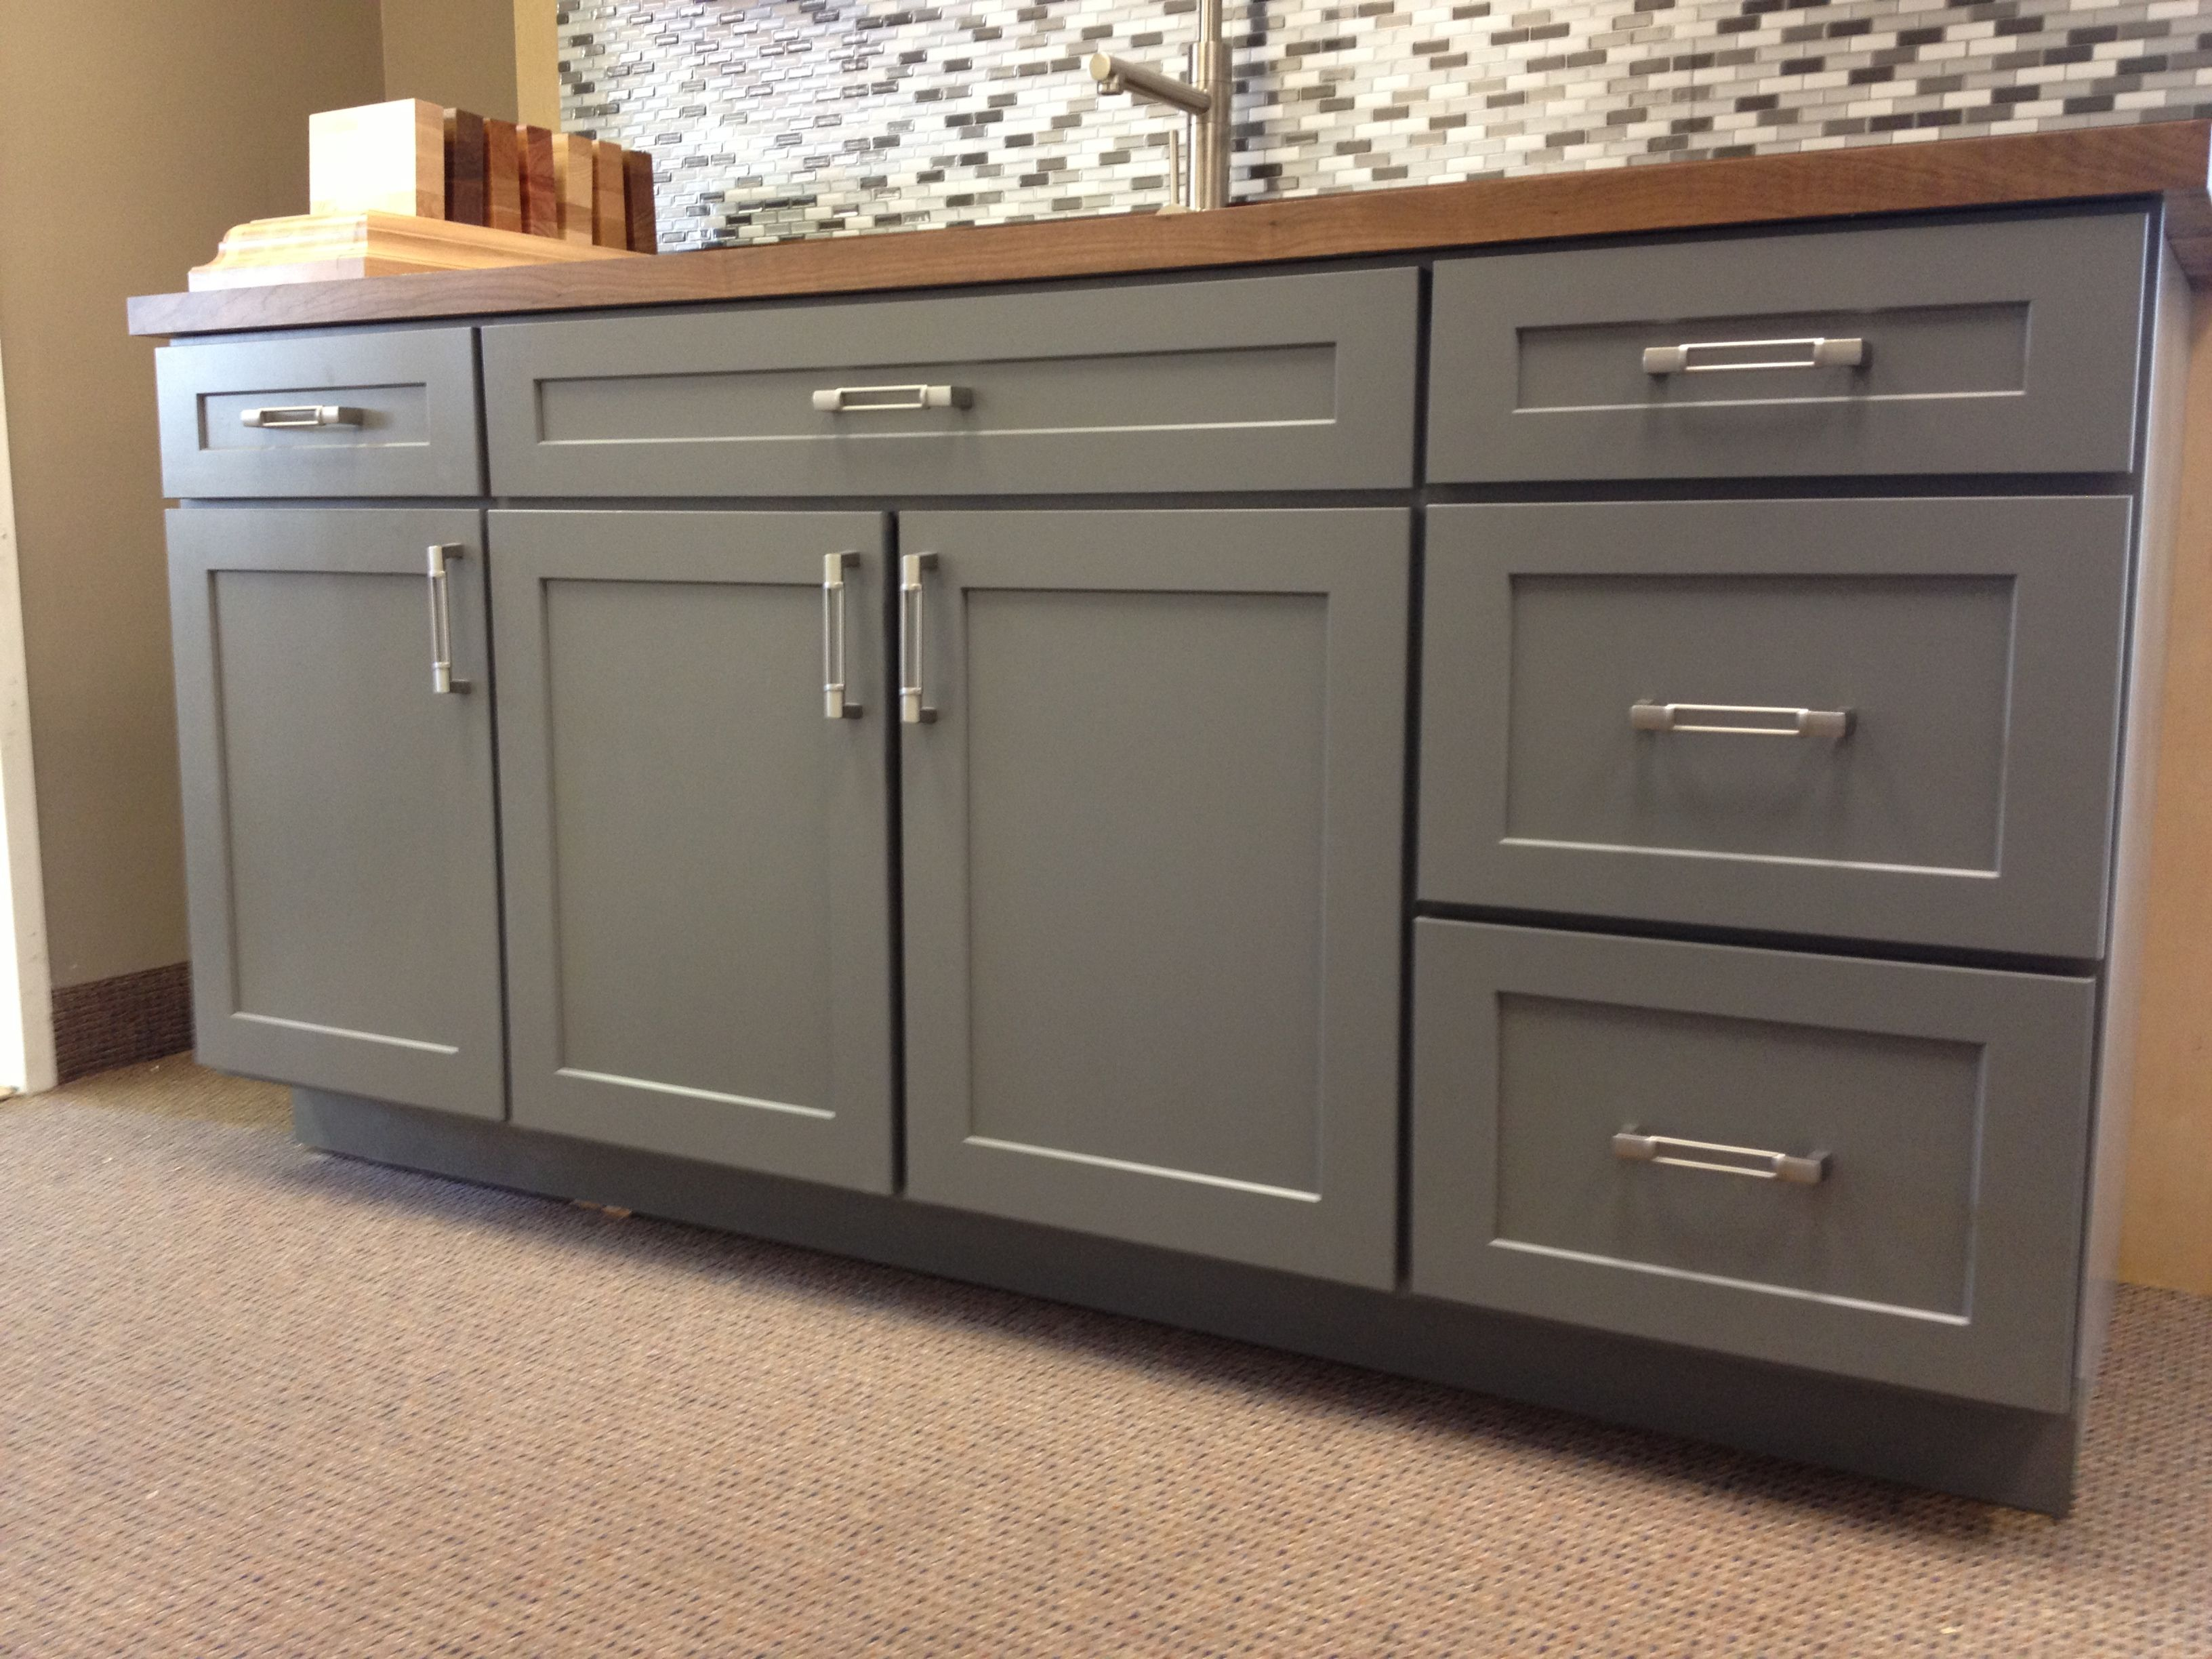 cabinets cabinet accessories kitchen cabinet door styles Armstrong Cabinets Trevant 5 Piece door style in the Slate painted finish topped with a Black